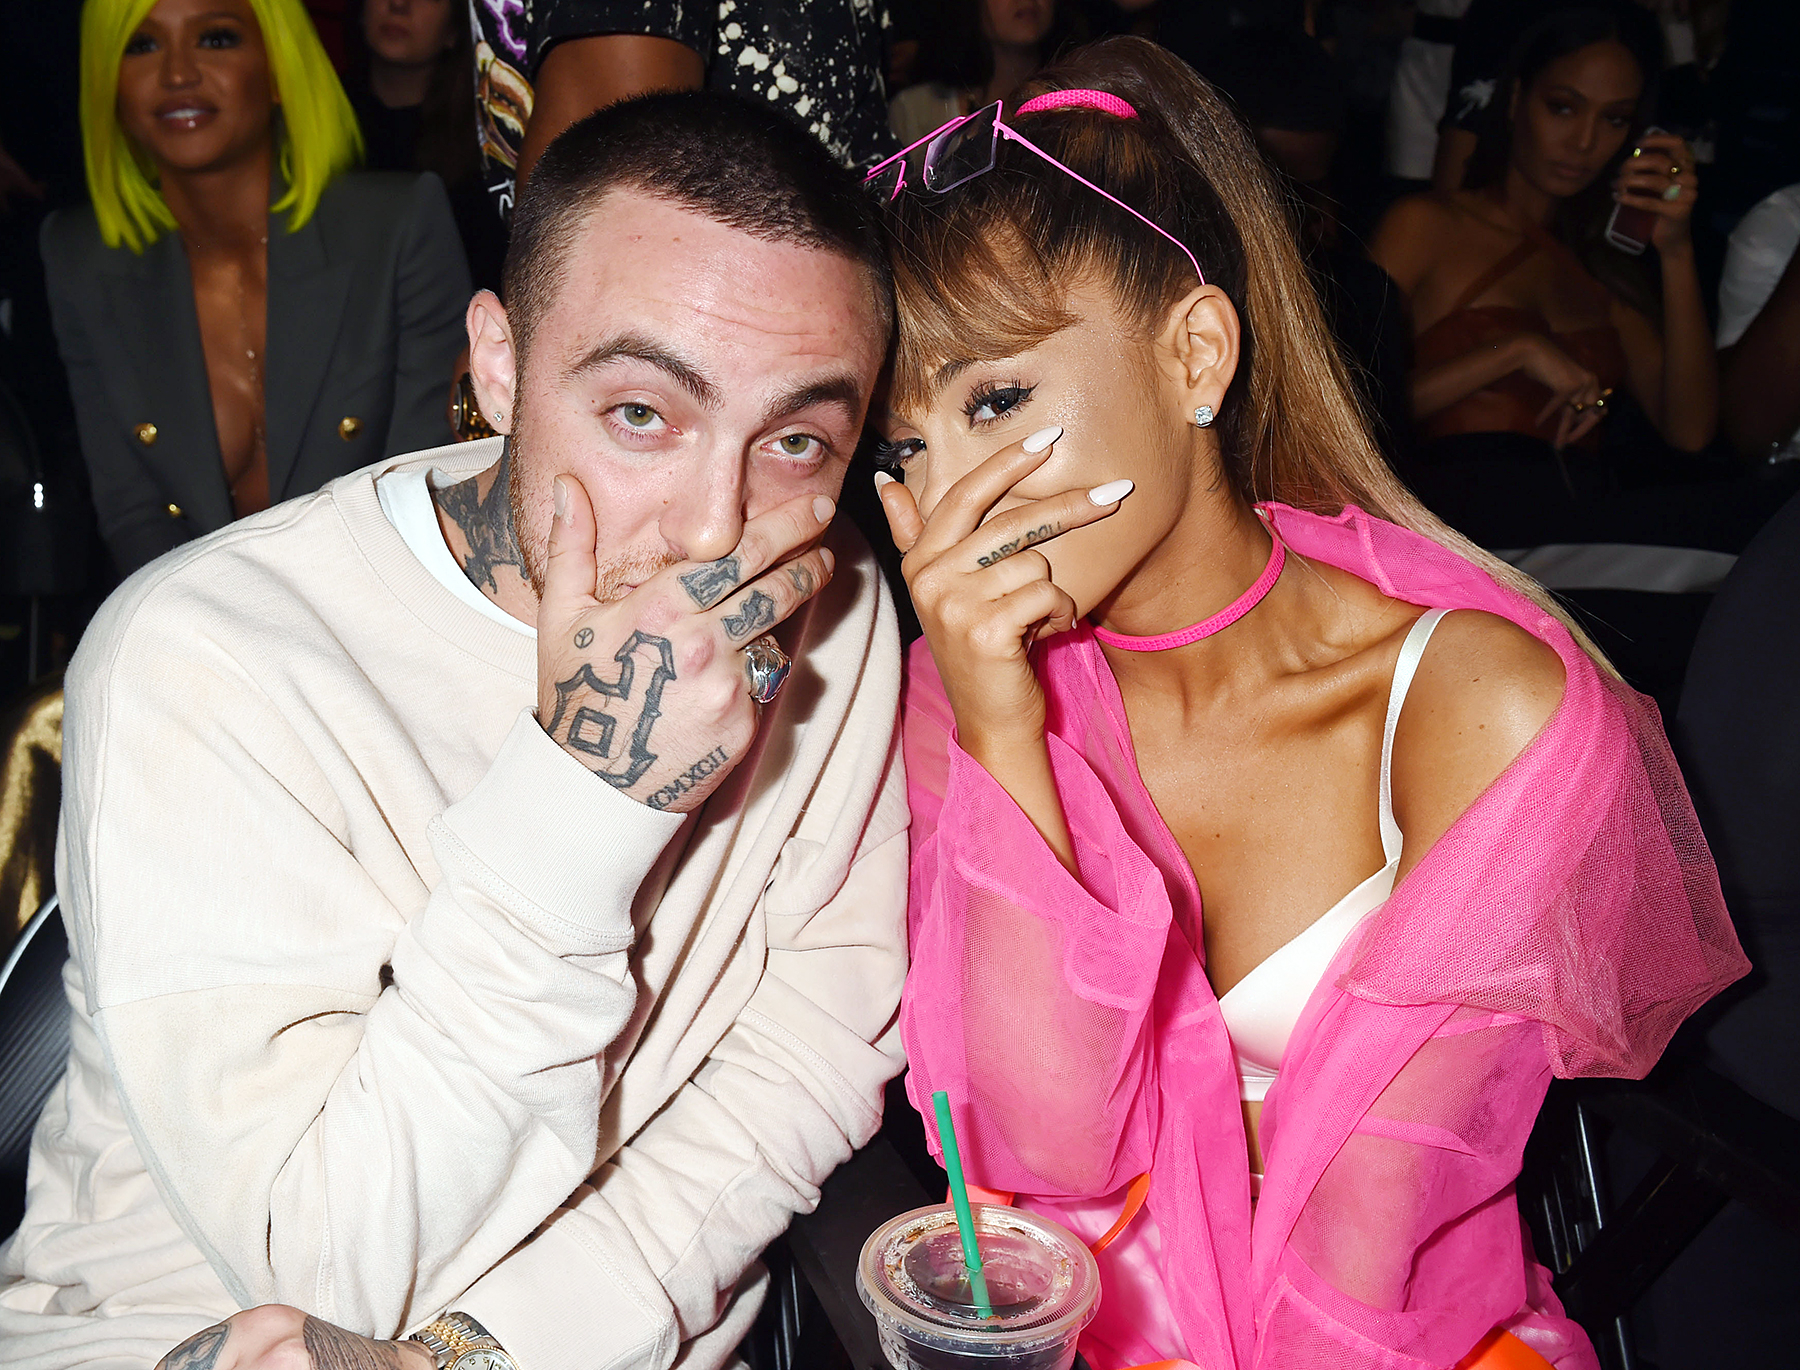 Ariana grande who is she dating now